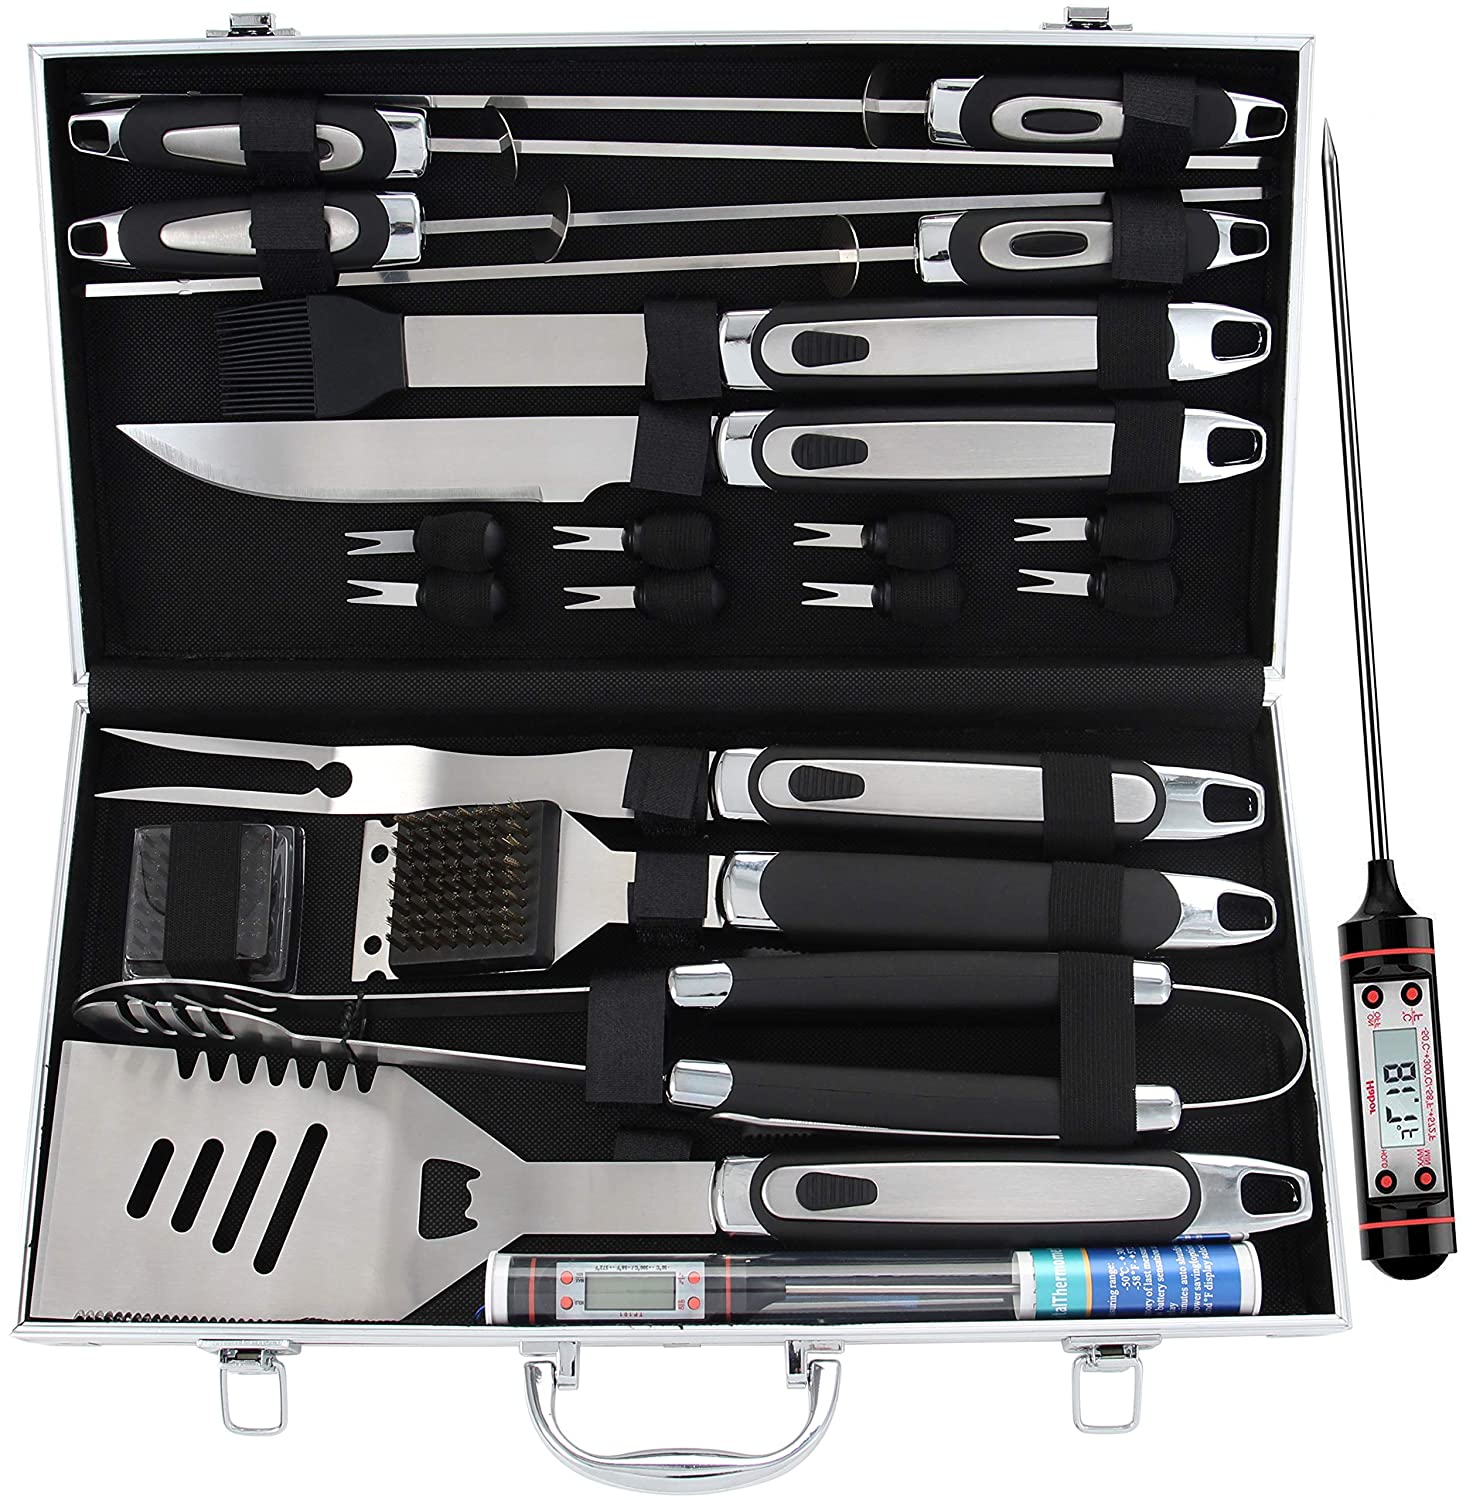 ROMANTICIST 21pc BBQ Grill Accessories Set with Thermometer - Heavy Duty Stainless Steel Barbecue Grilling Utensils with Non-Slip Handle in Aluminum Storage Case for Men Women